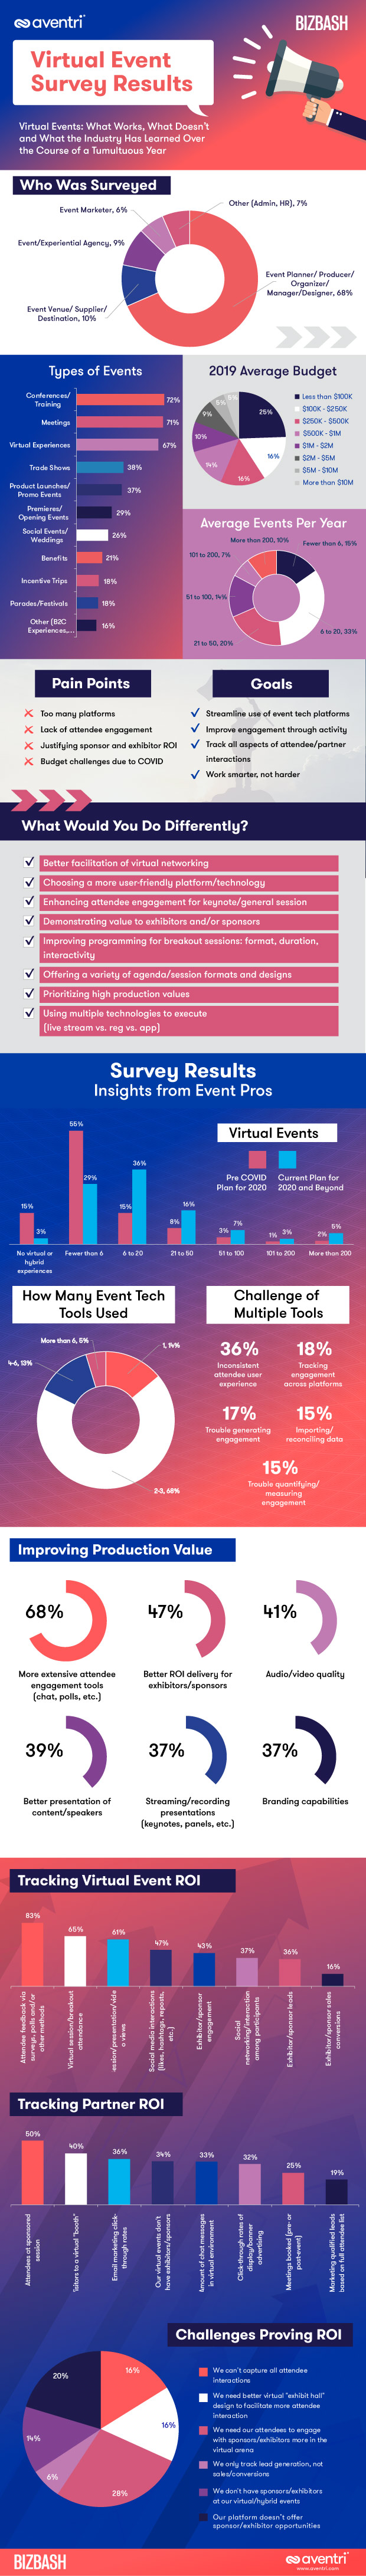 Aventri and Bizbash Virtual Events Survey Results Infographic